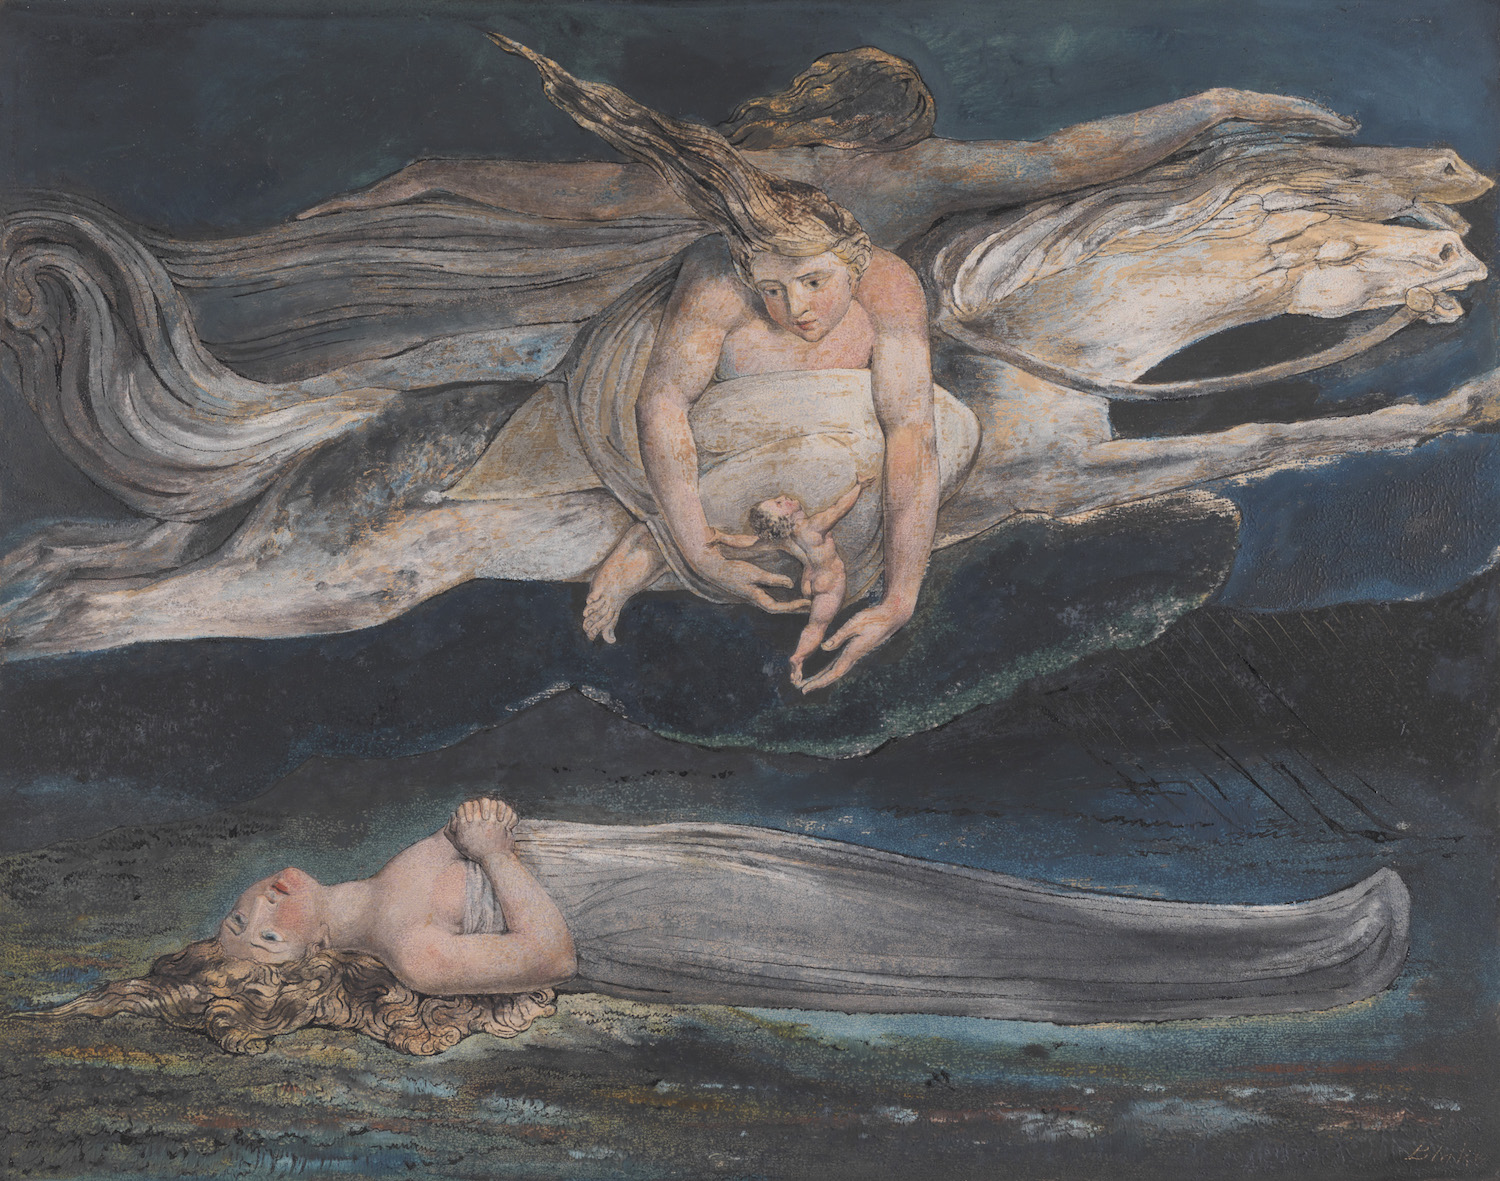 William Blake, 1757-1827. Pity c.1795. Tate. Presented by W. Graham Robertson 1939.